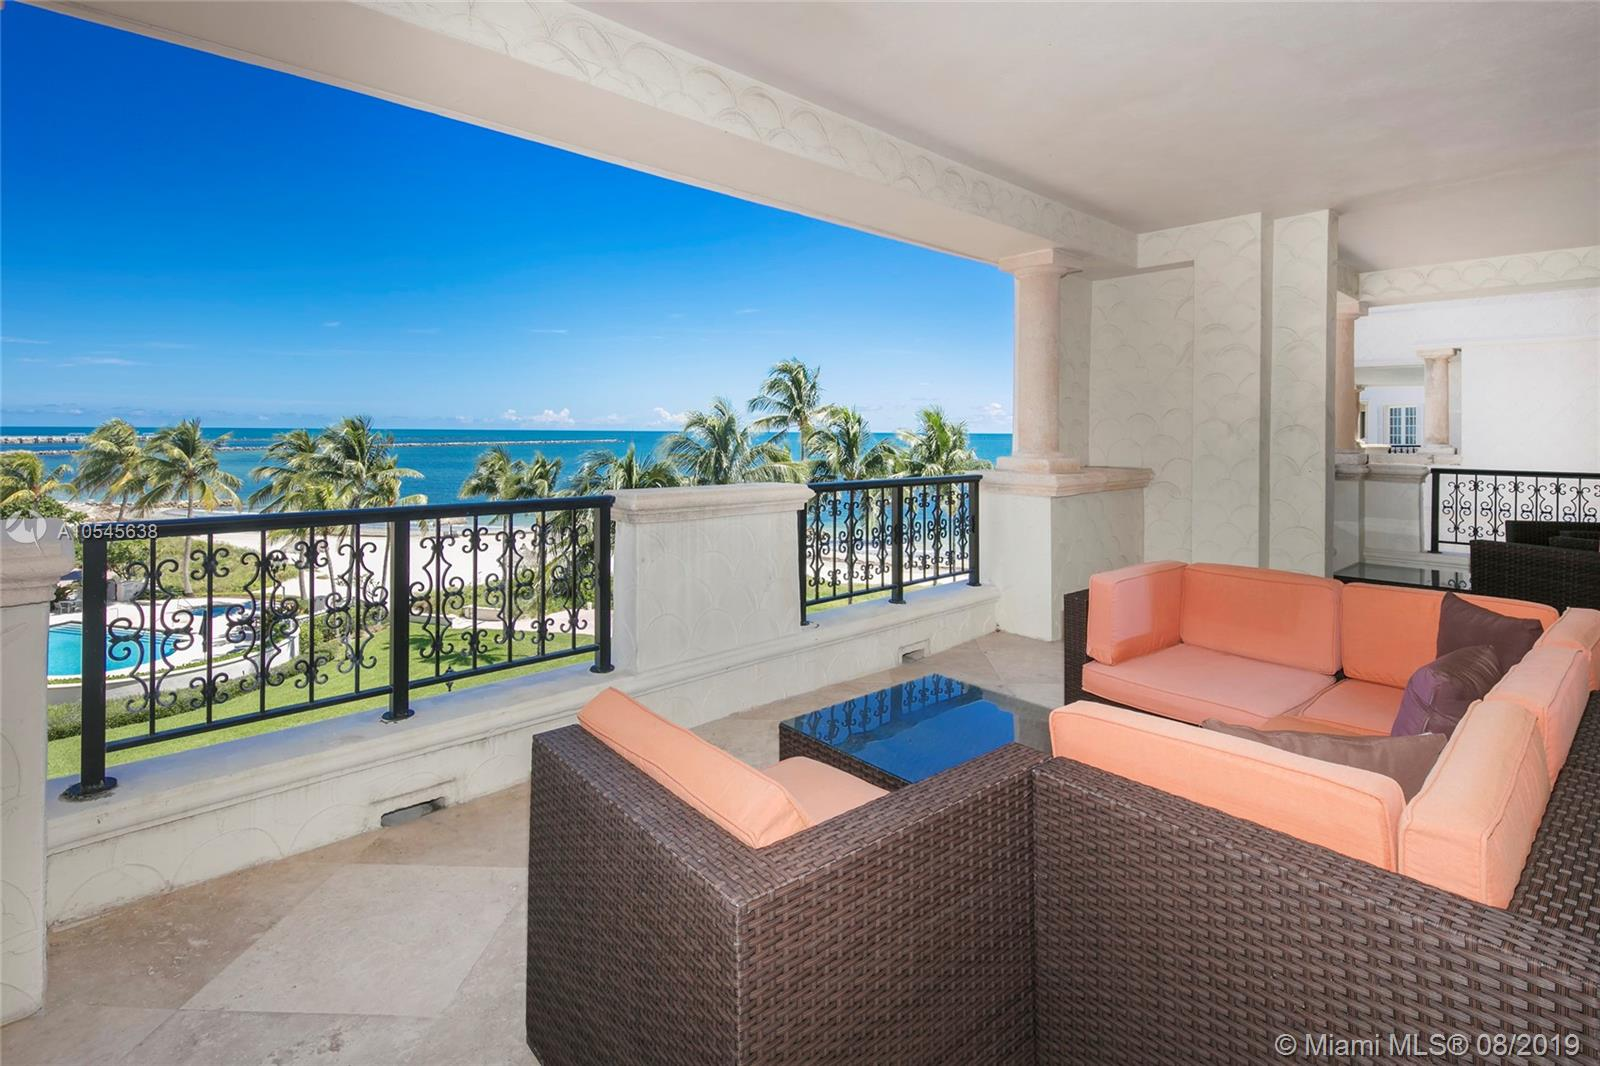 This beautiful 3BR/3+1BA Oceanside residence boasts 2,530 SF w/exquisite Travertine floors both inside & on the full wrapping balcony with spectacular sunrise views over the beach, Ocean & Government Cut.  An open floor plan features a gracious living room w/direct balcony access, gourmet kitchen with granite counter tops, & separate dining area, all with amazing ocean views. The Oceanside master suite has balcony access, & master bath w/large walk-in closet, glass shower & sunken Jacuzzi tub.  The other two bedrooms are each uniquely designed & one has a private balcony with views to the golf course & Downtown Miami.  An expansive wrapping terrace with comfortable seating areas, al fresco dining table and open views to the beach, ocean and Government Cut complete this beautiful unit.